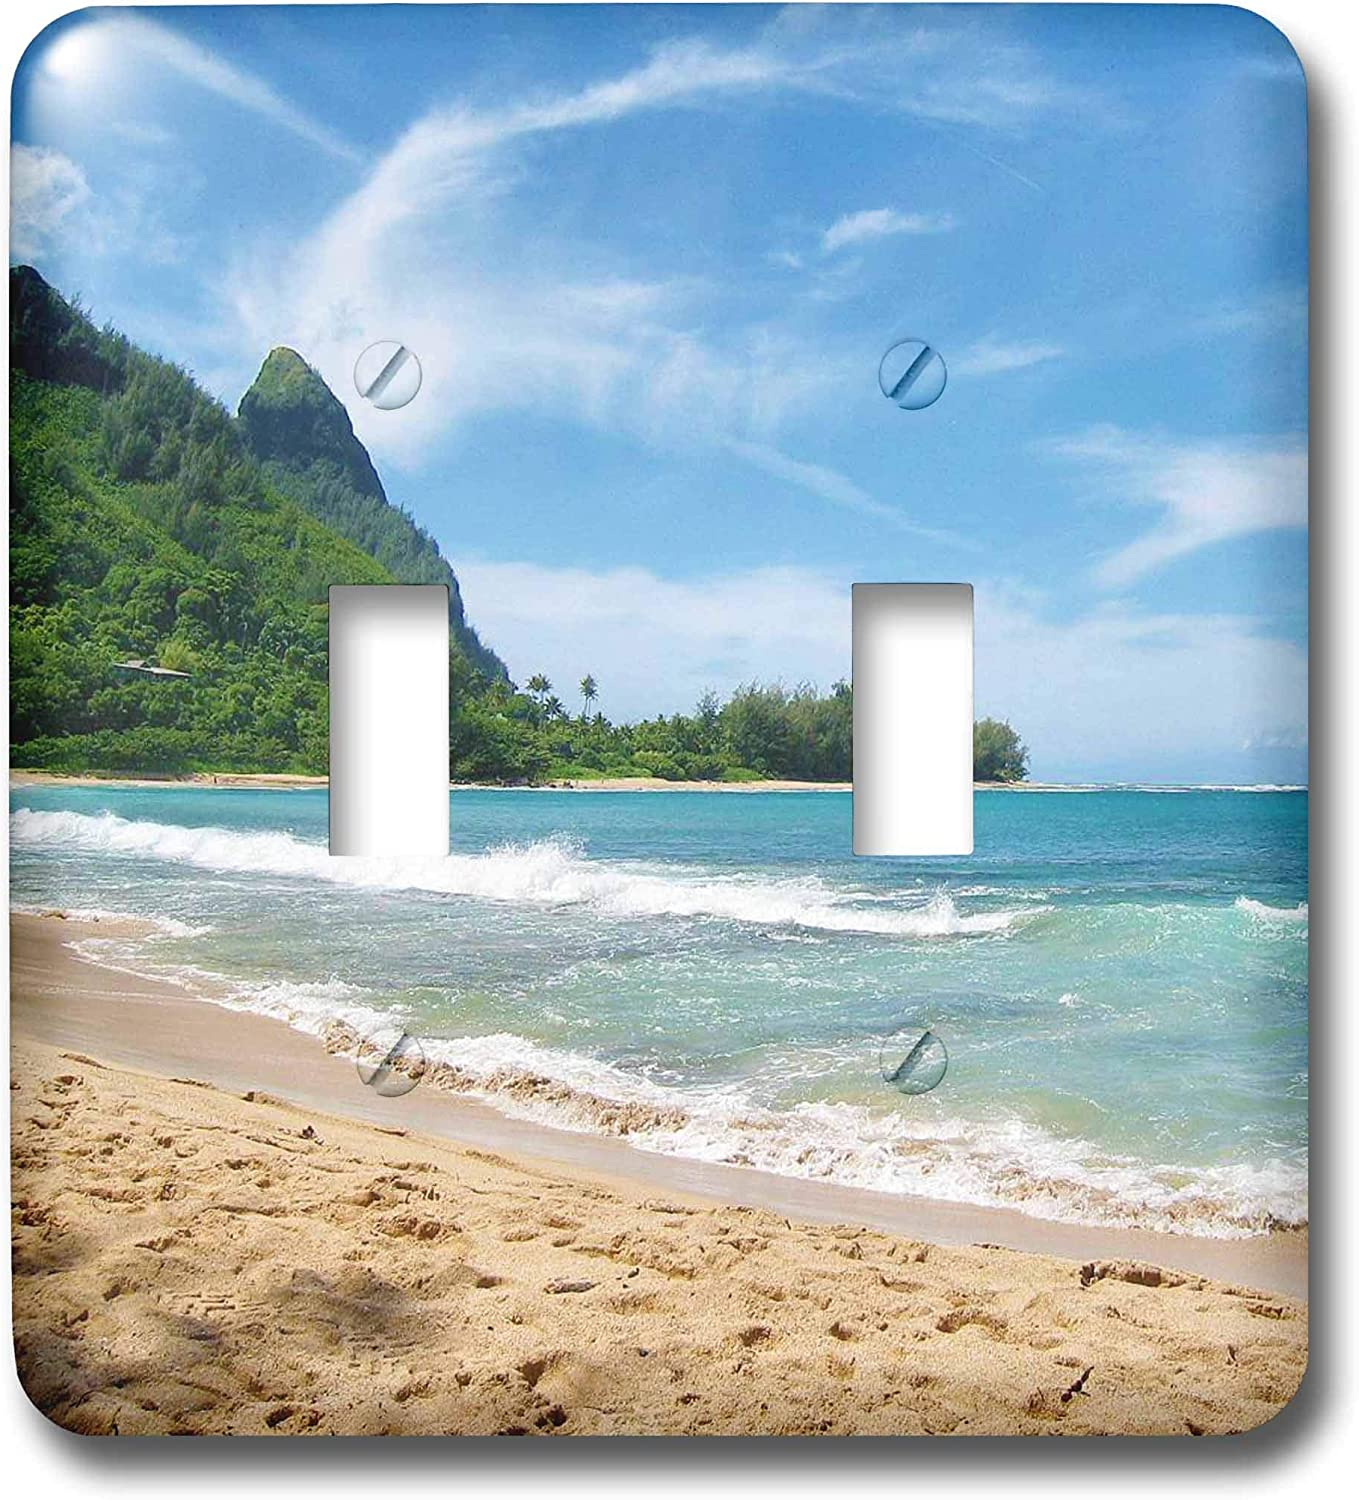 3drose Lsp 45292 2 Blue Ocean Hawaii Tropical Photography Double Toggle Switch Switch Plates Amazon Com